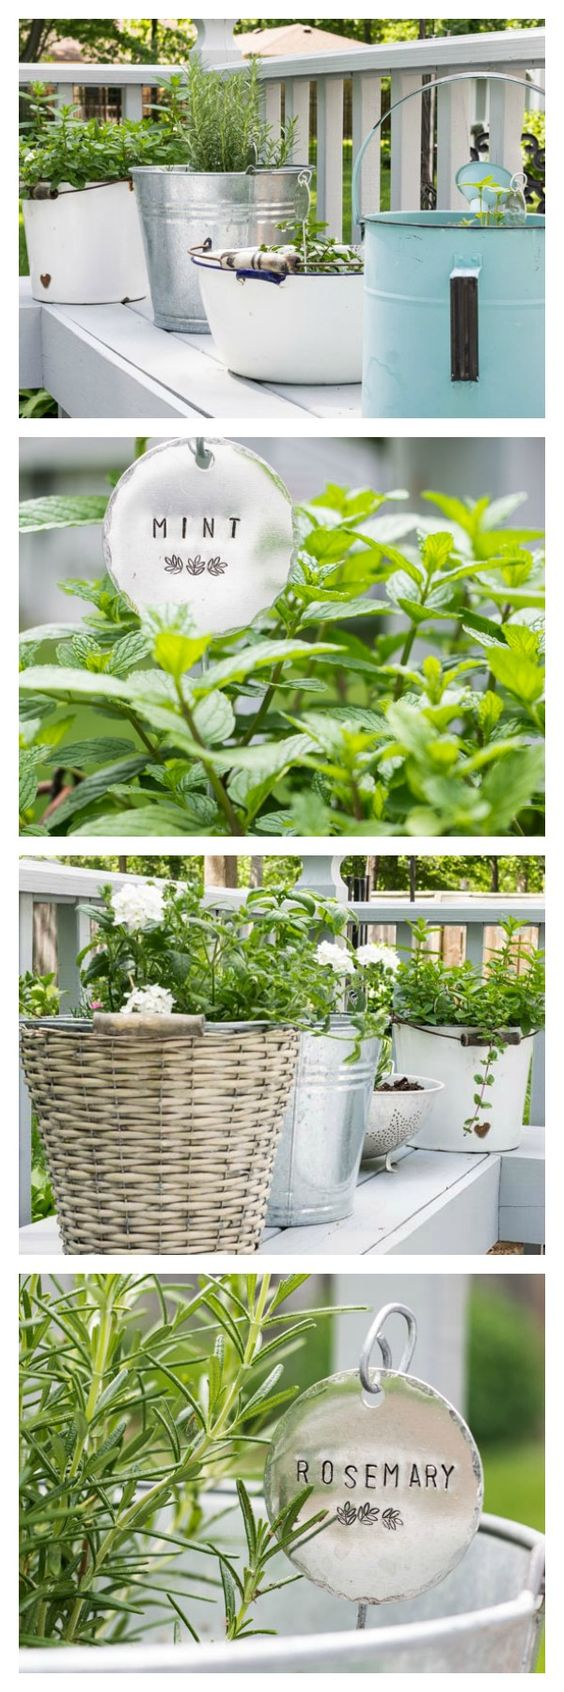 Plant a low maintenance herb garden in vintage containers. Use anything you have on hand from a metal bucket to an old watering can!